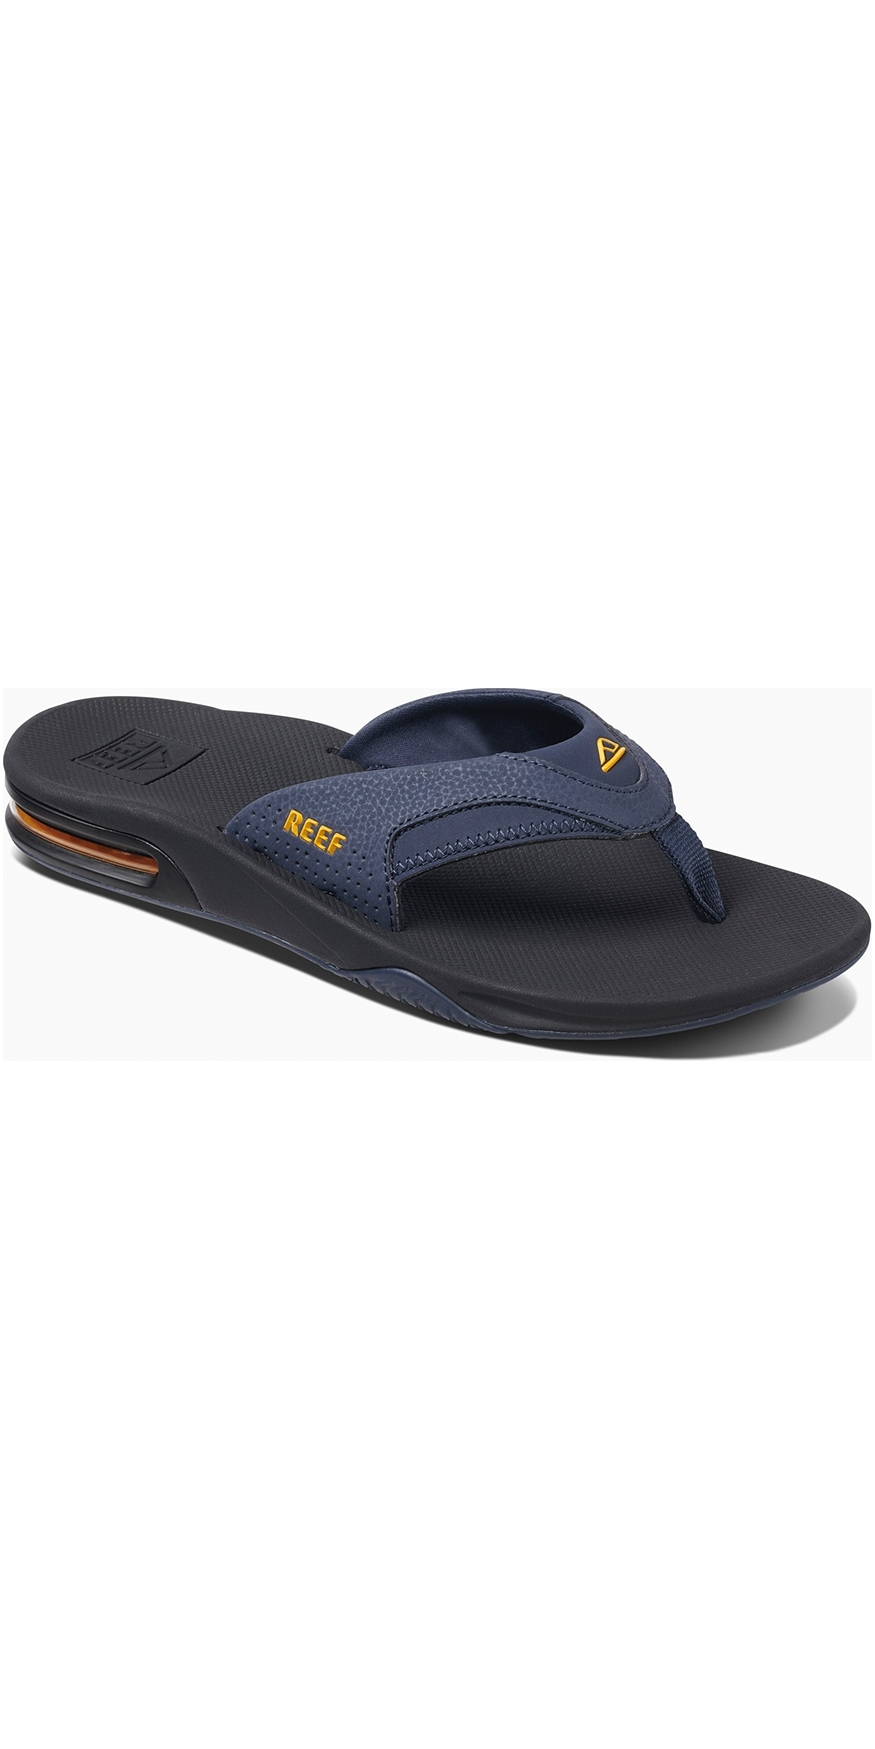 Sandals Reef Yellow Mens Flops Fanning Rf002026 2019 Flip Navy AL4R5j3